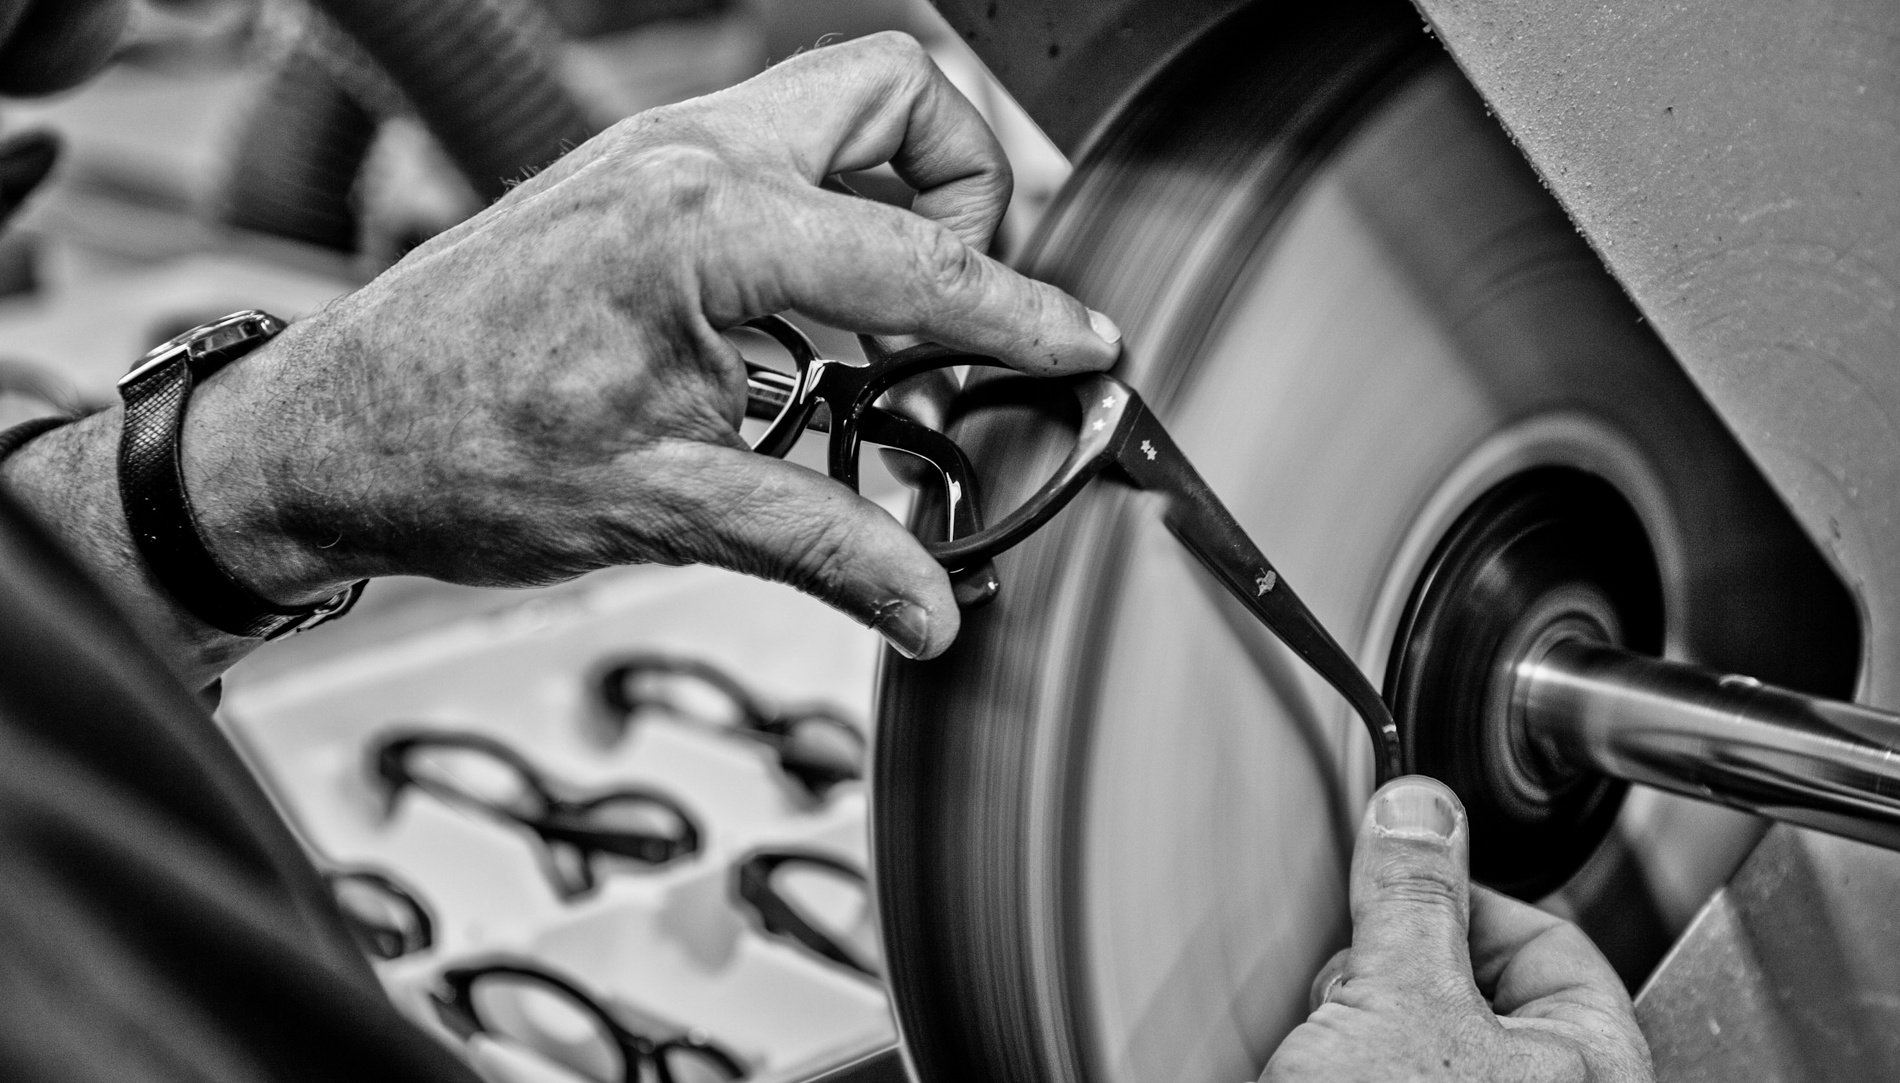 Cutler and Gross frames being made in Italy